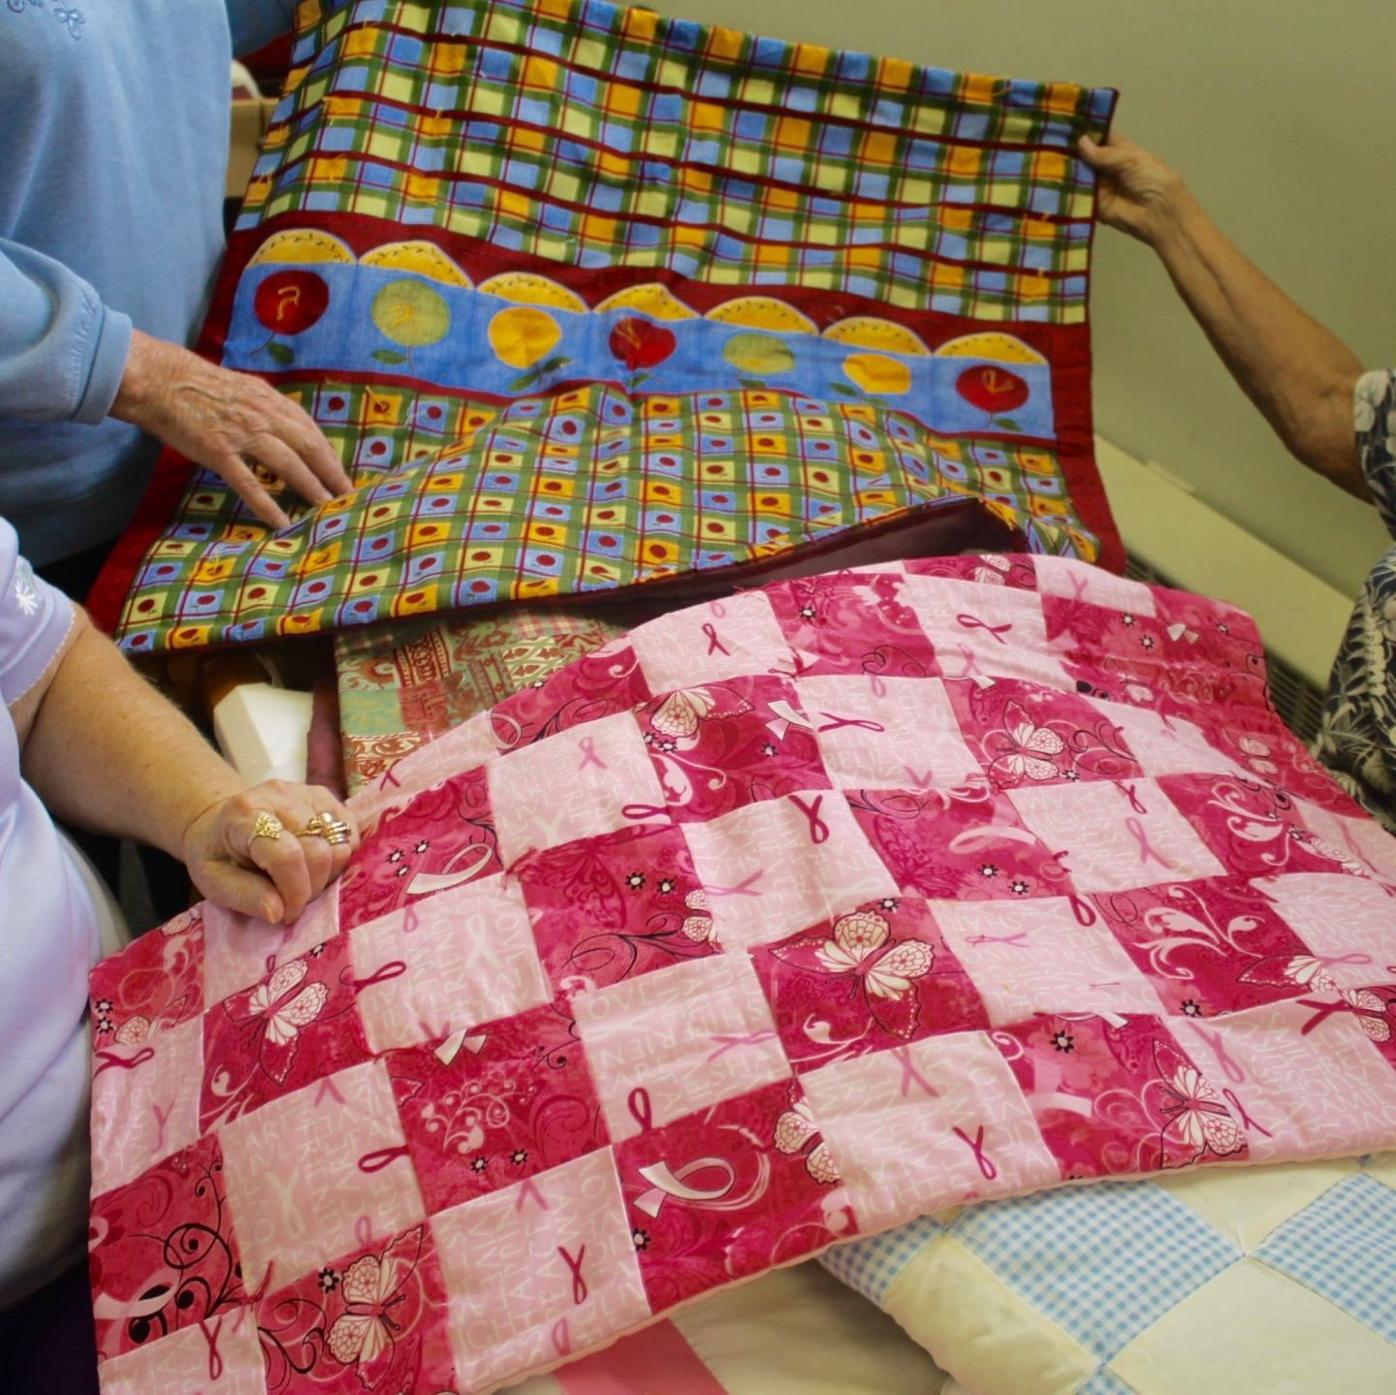 Donated quilts